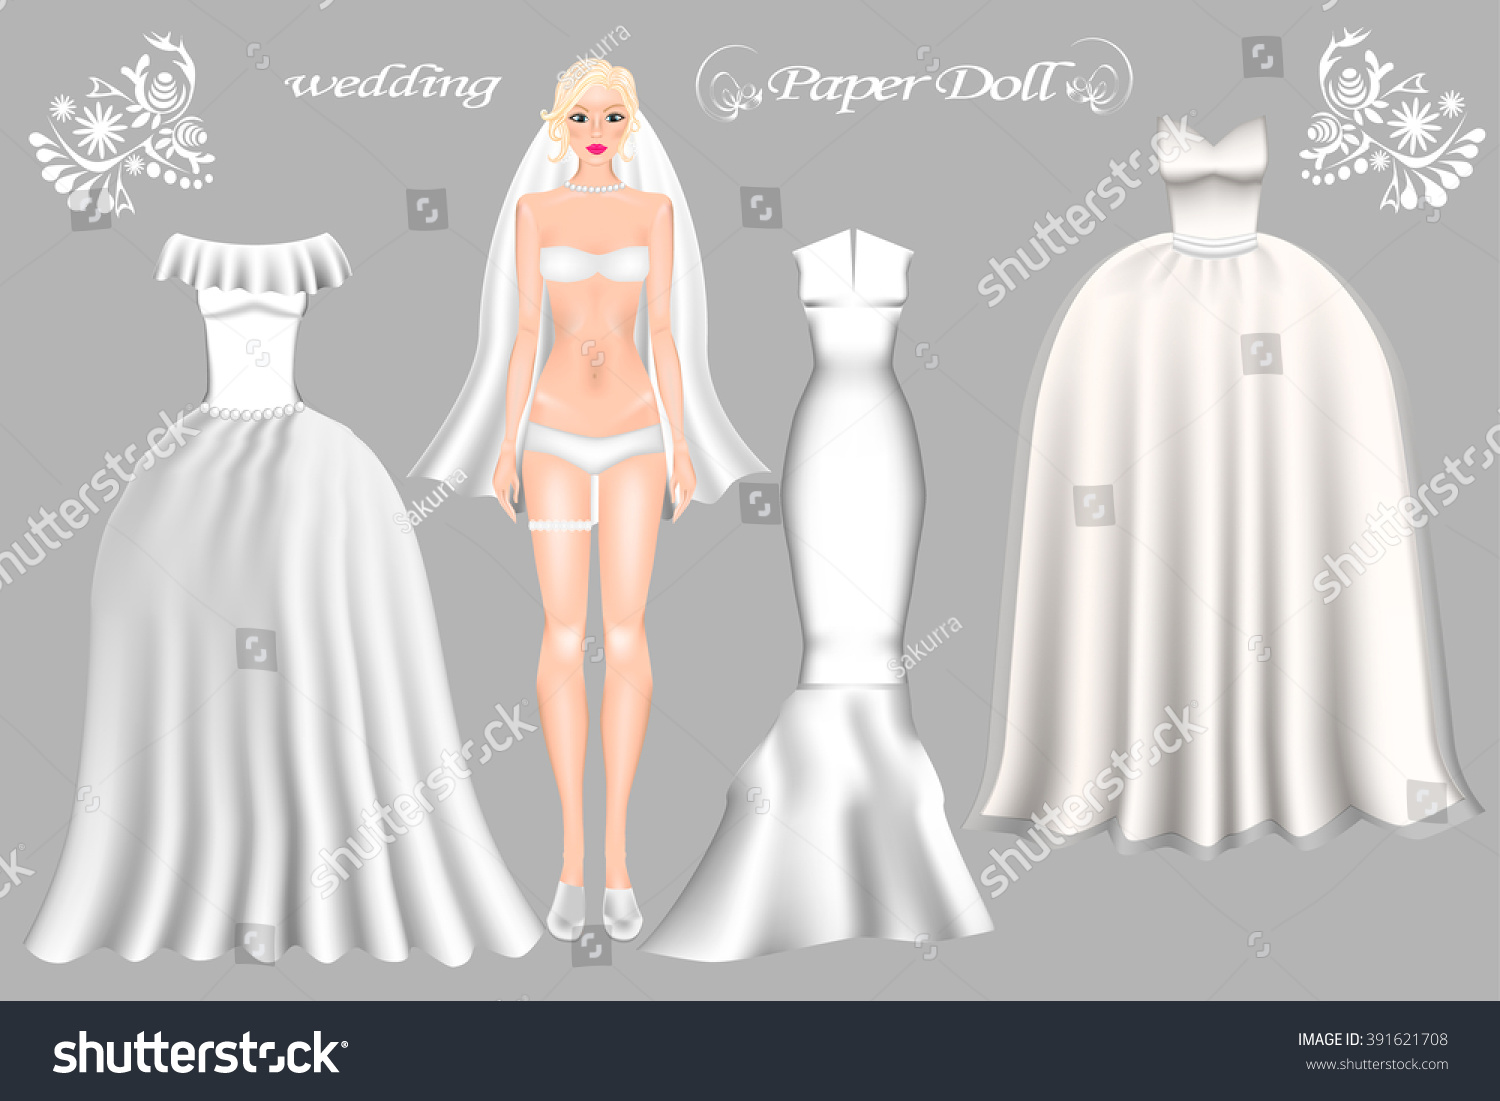 Dress Paper Doll Bride Paper Doll Stock Vector 391621708 - Shutterstock